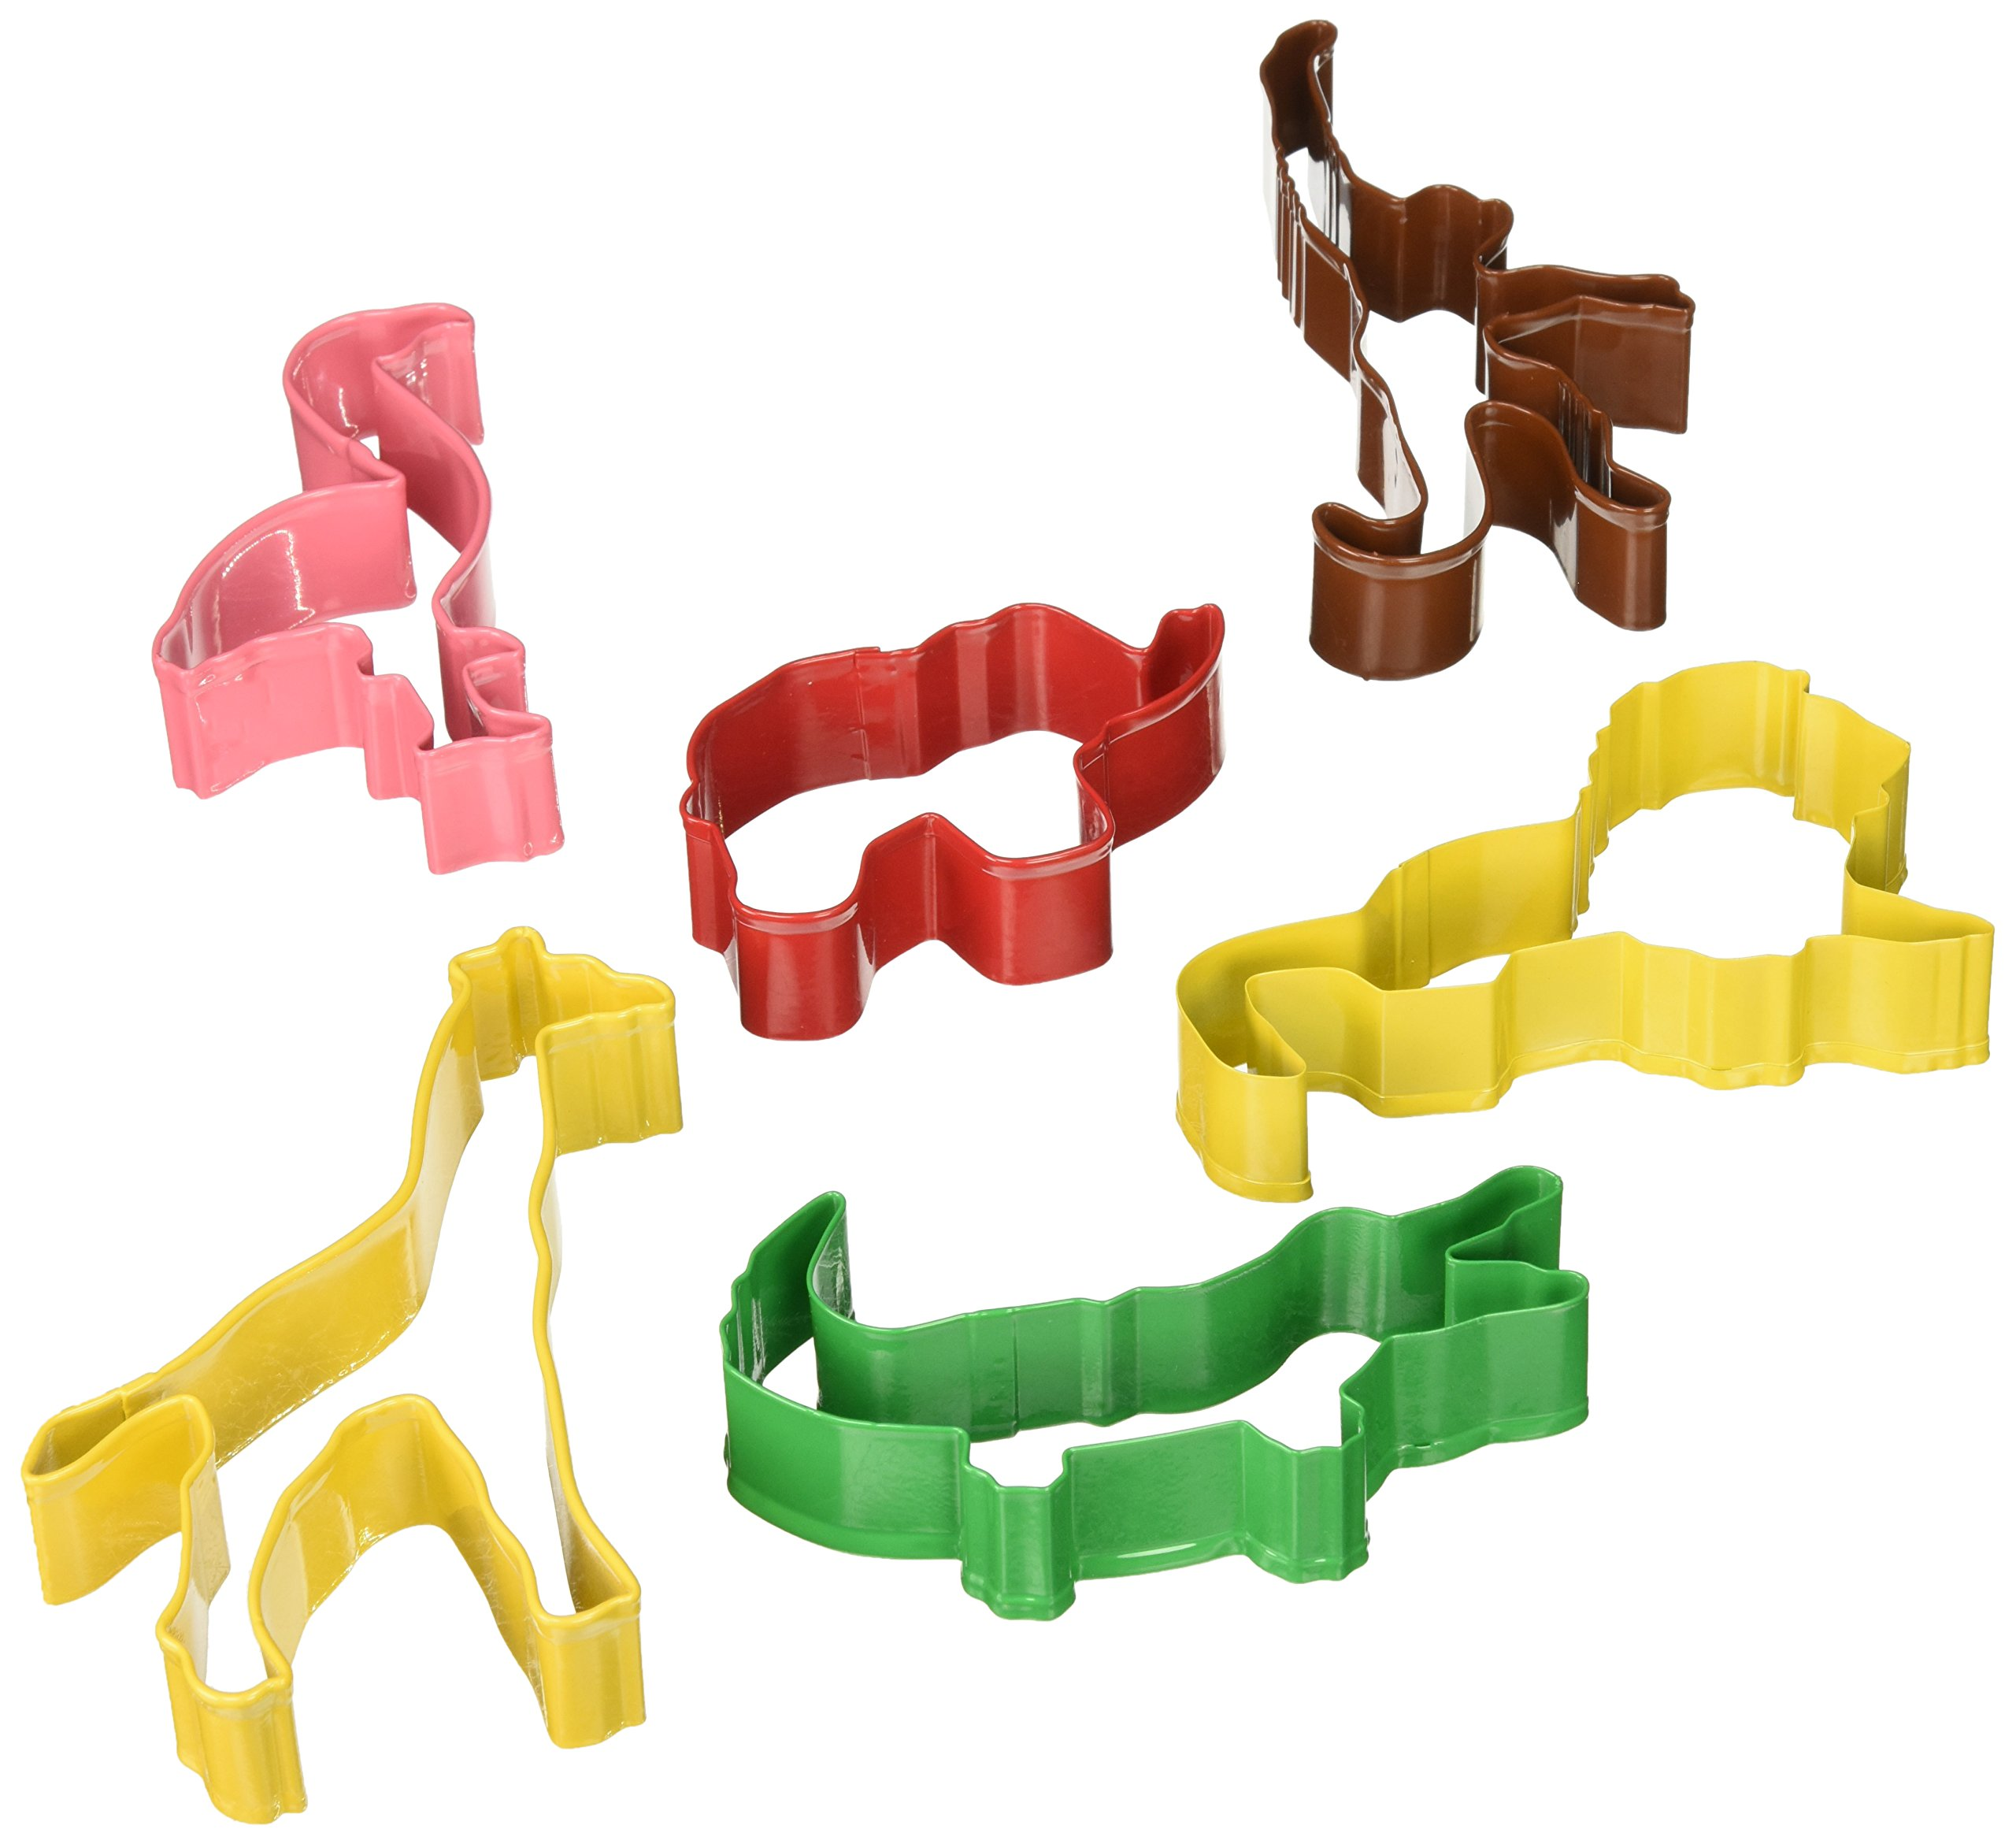 R&M International 1824 Safari Animal Cookie Cutters, Lion, Elephant, Monkey, Alligator, Flamingo, Giraffe, 6-Piece Set